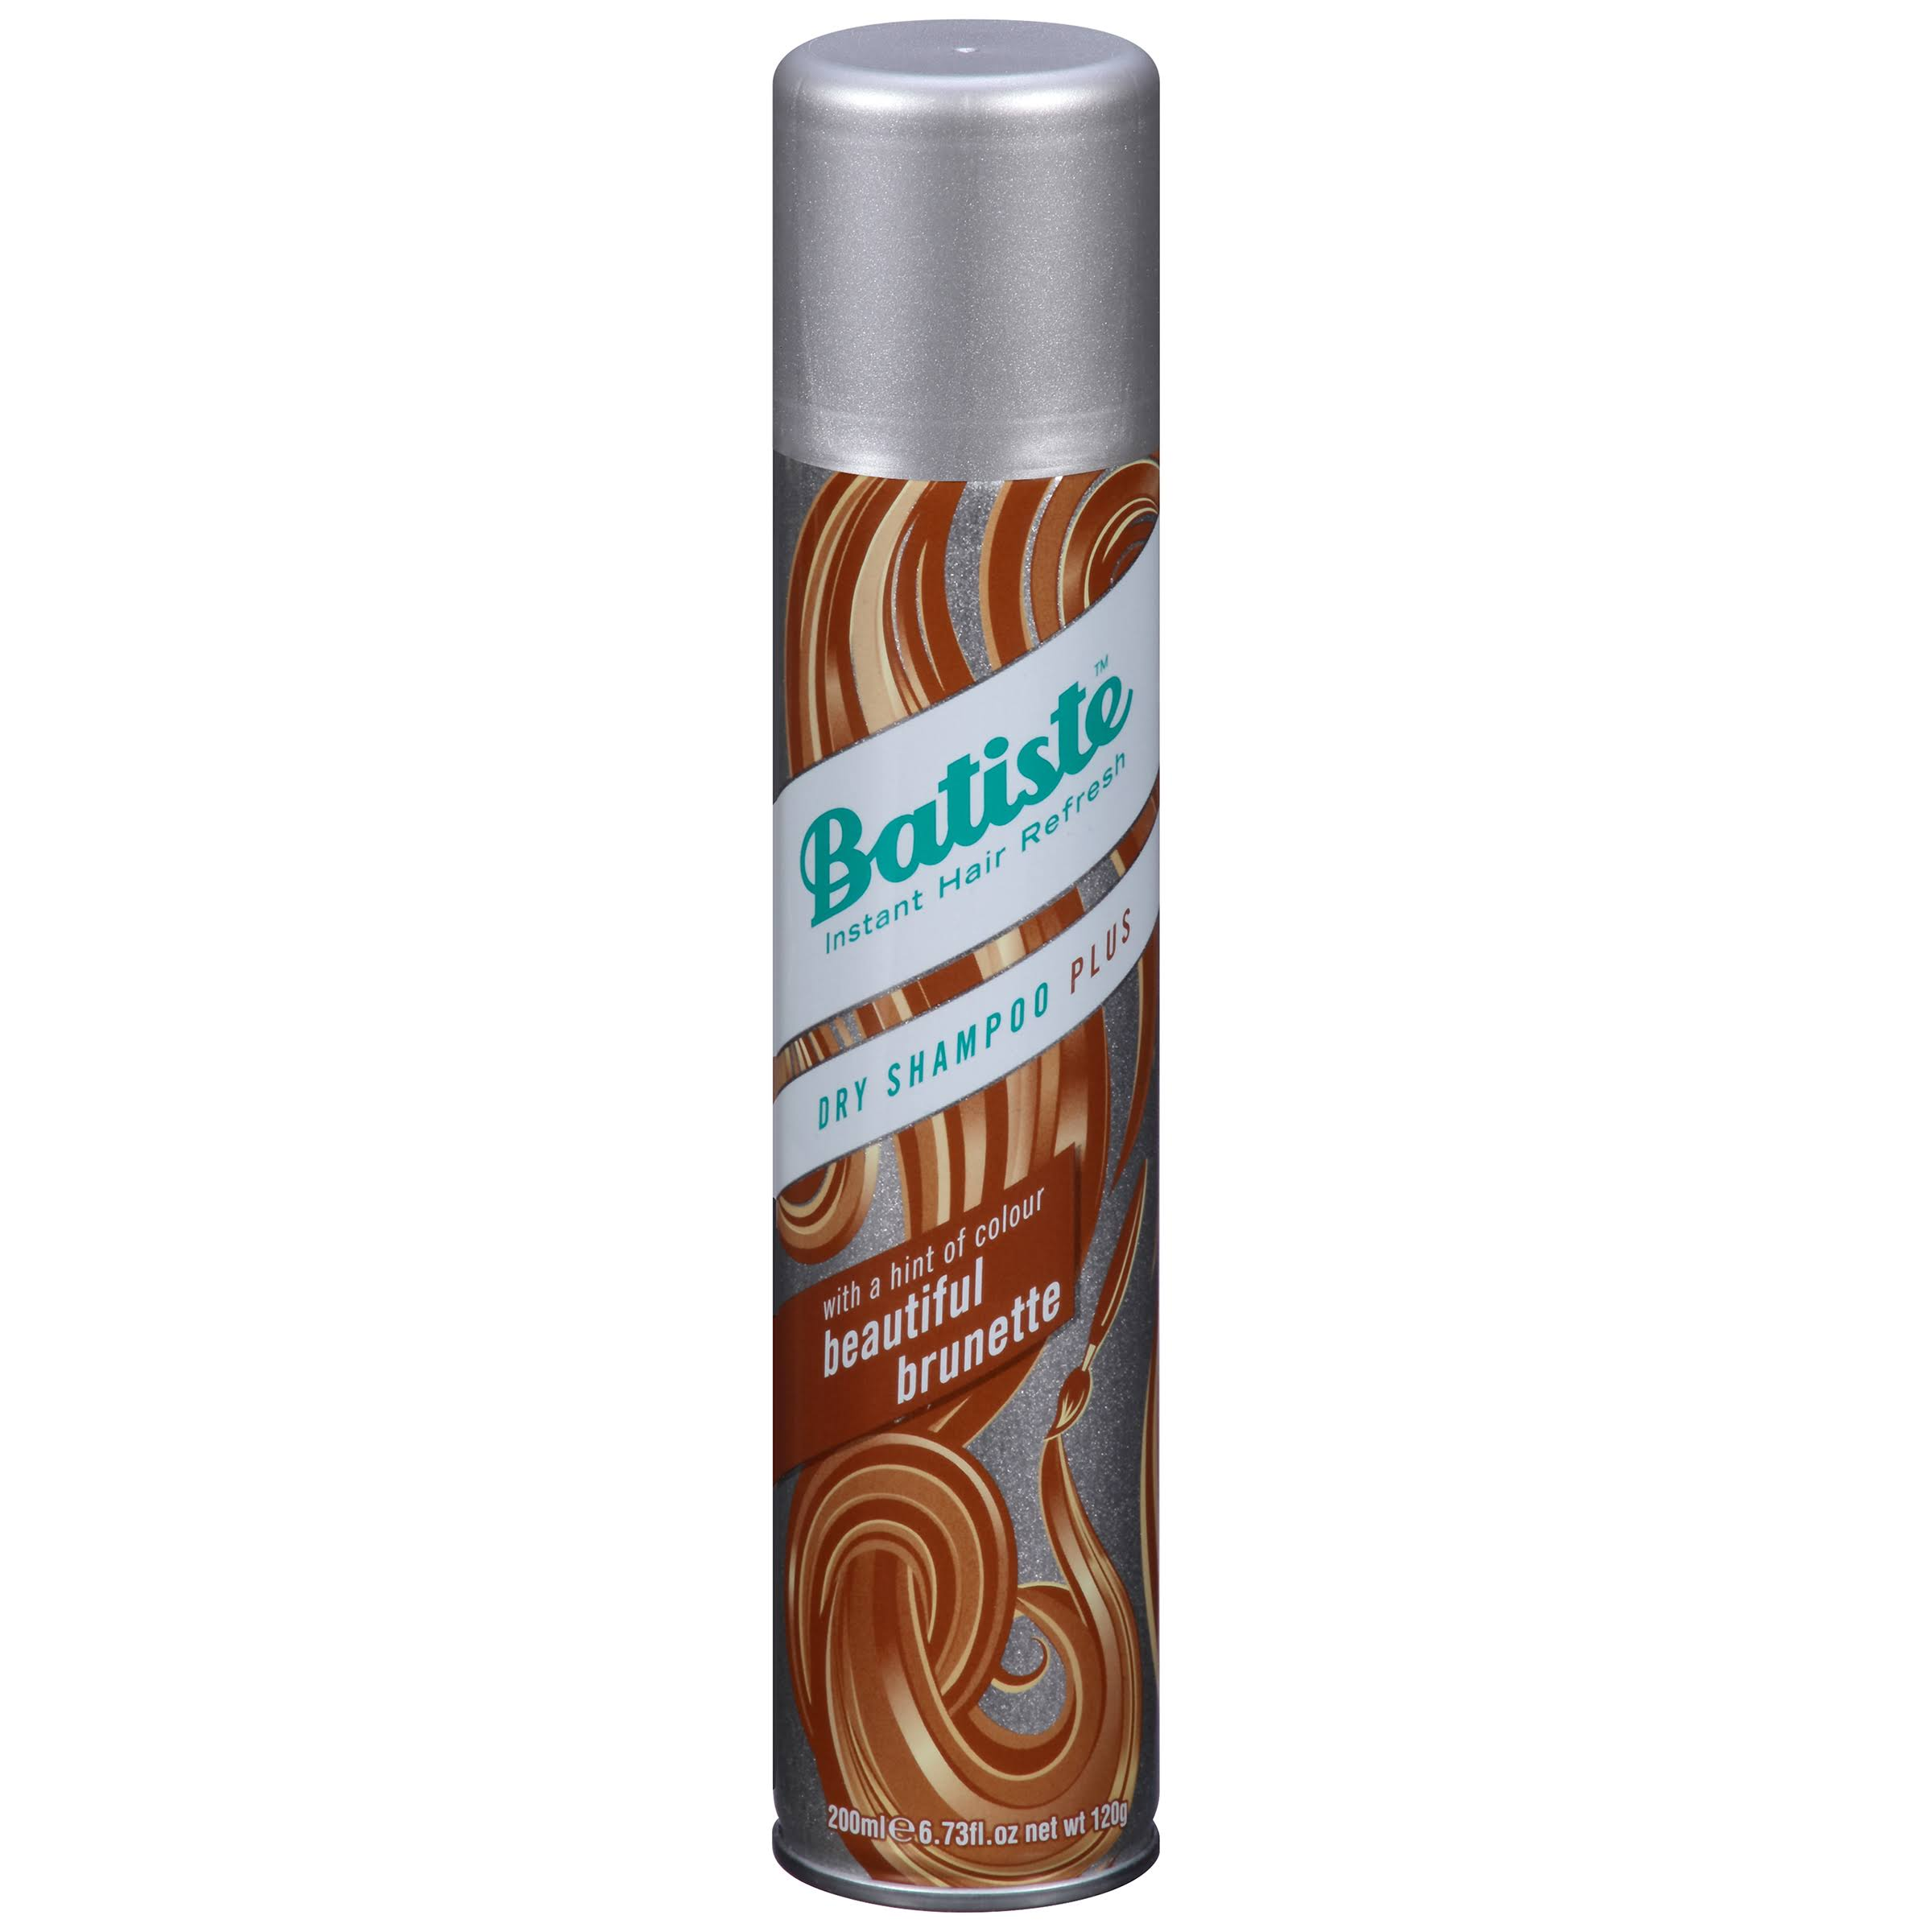 Batiste Dry Shampoo & a Hint of Colour for Brunettes - 200ml